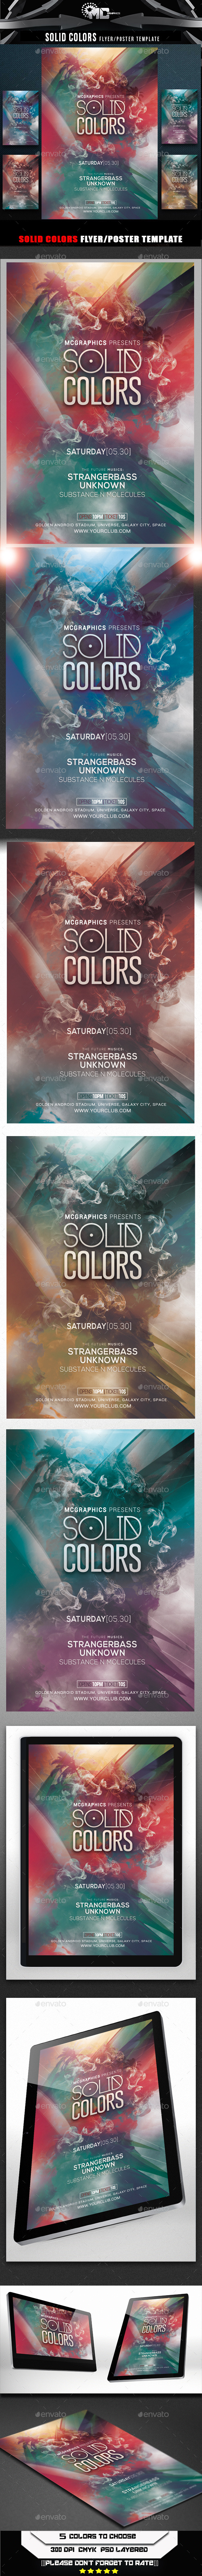 Solid Colors Flyer Template - Flyers Print Templates